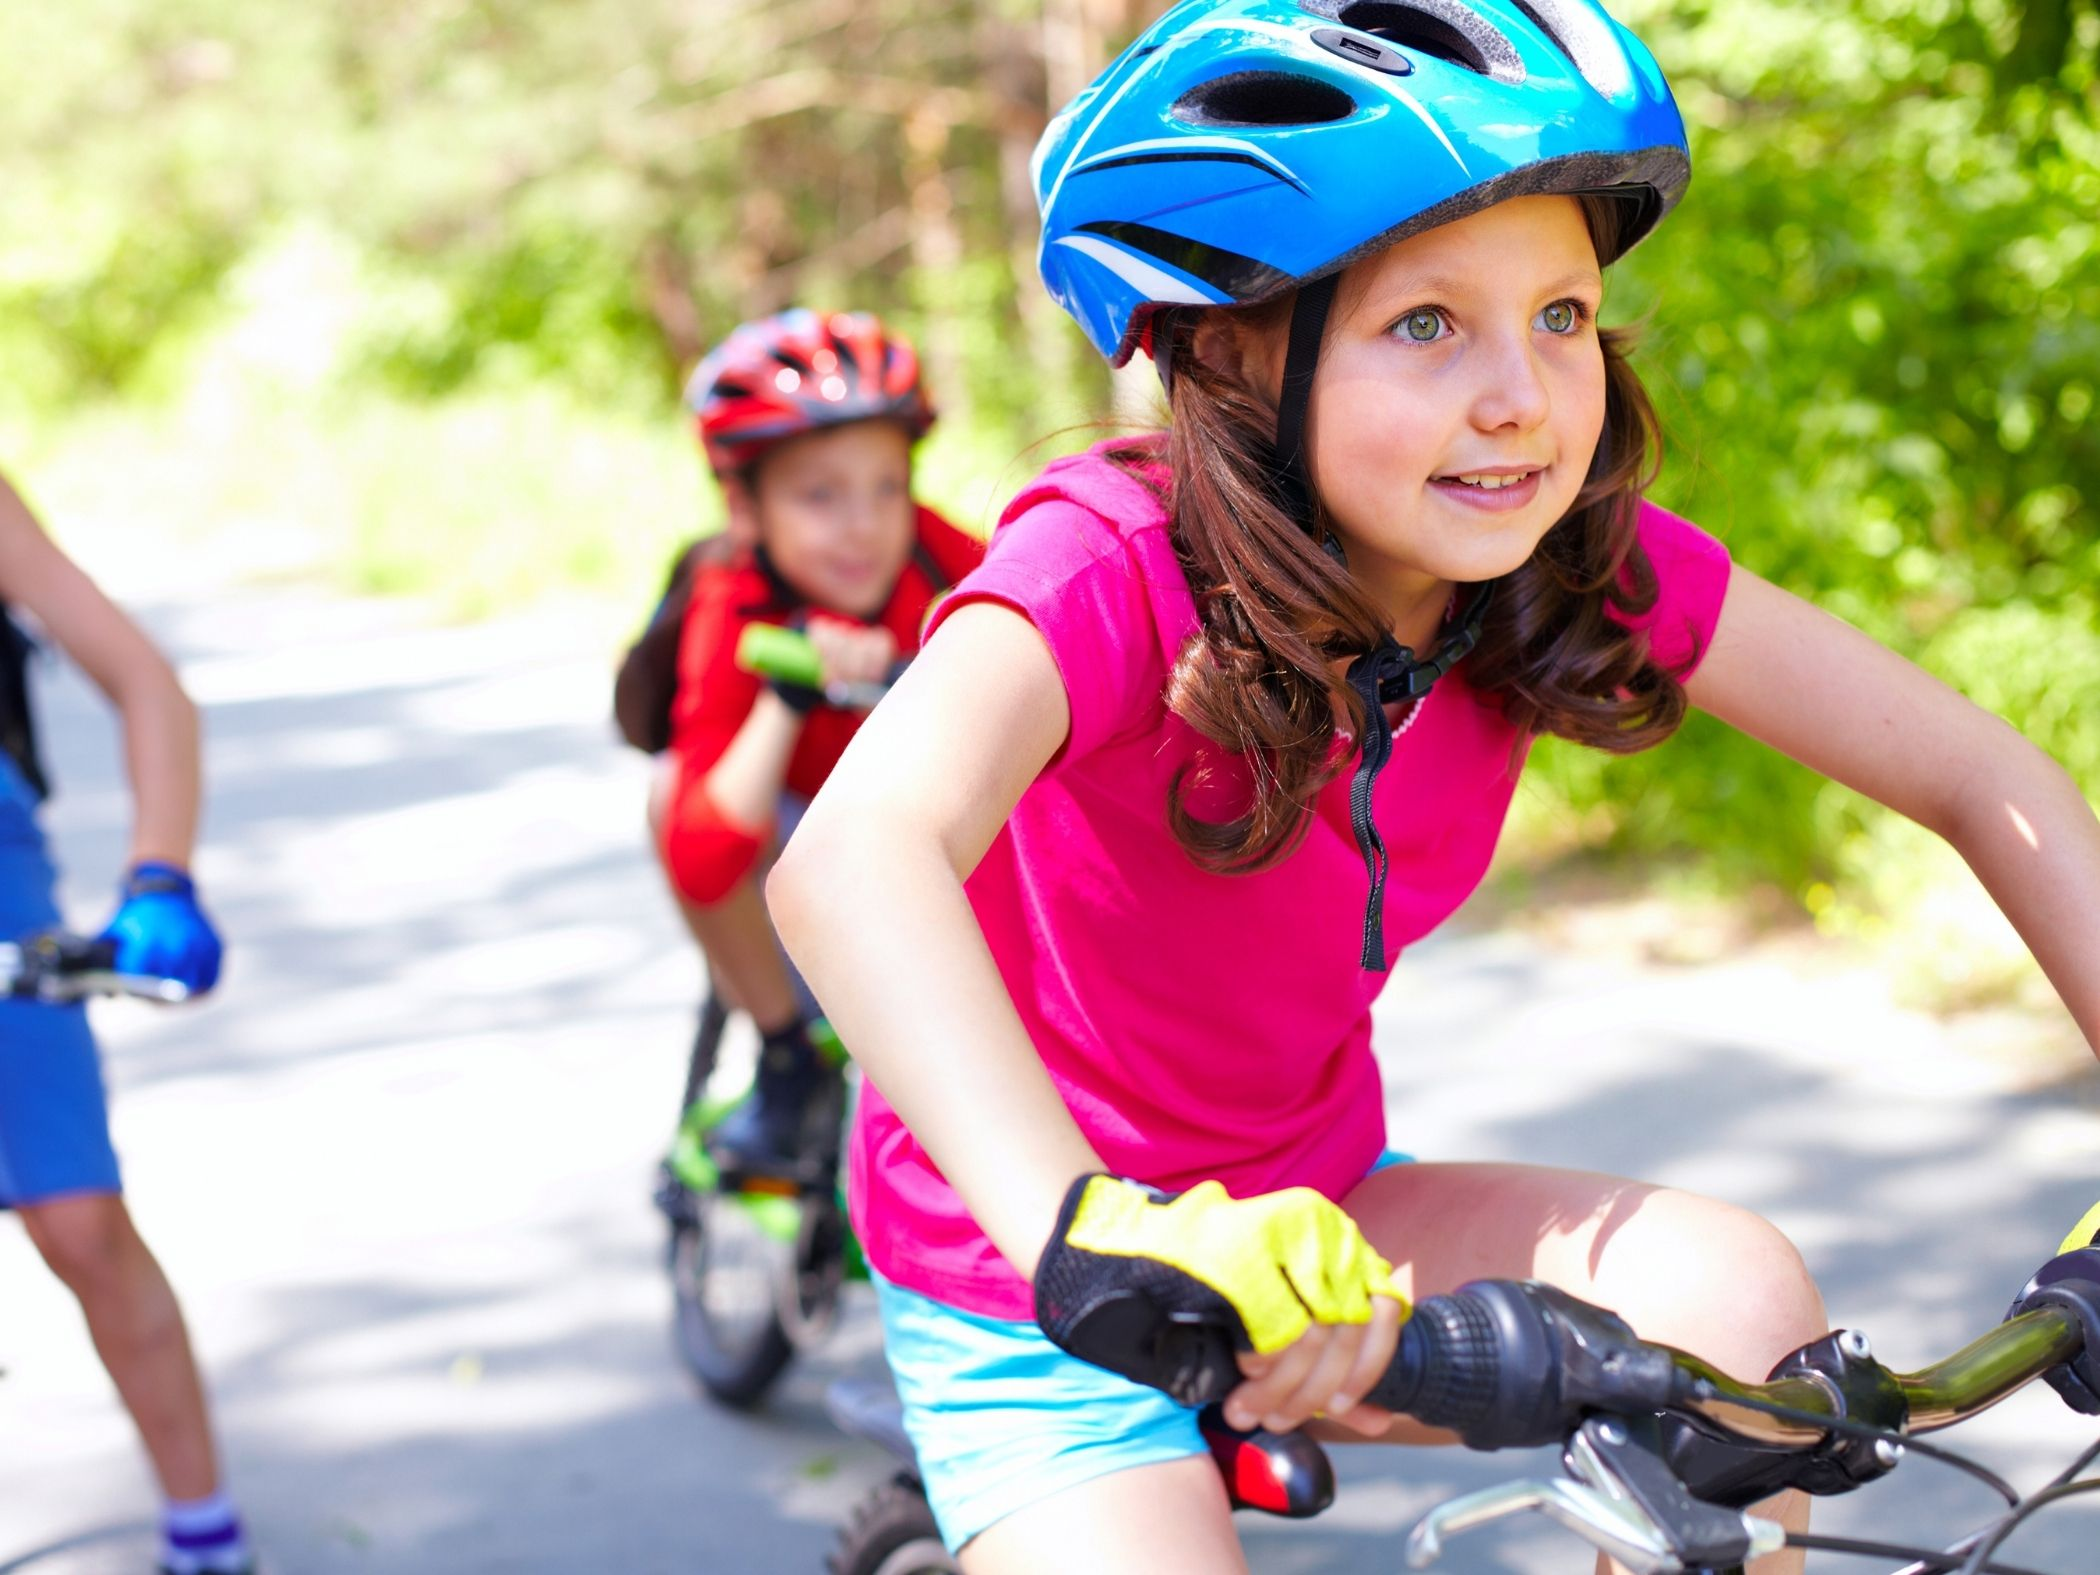 Young girl riding a bicycle outside on a paved trail